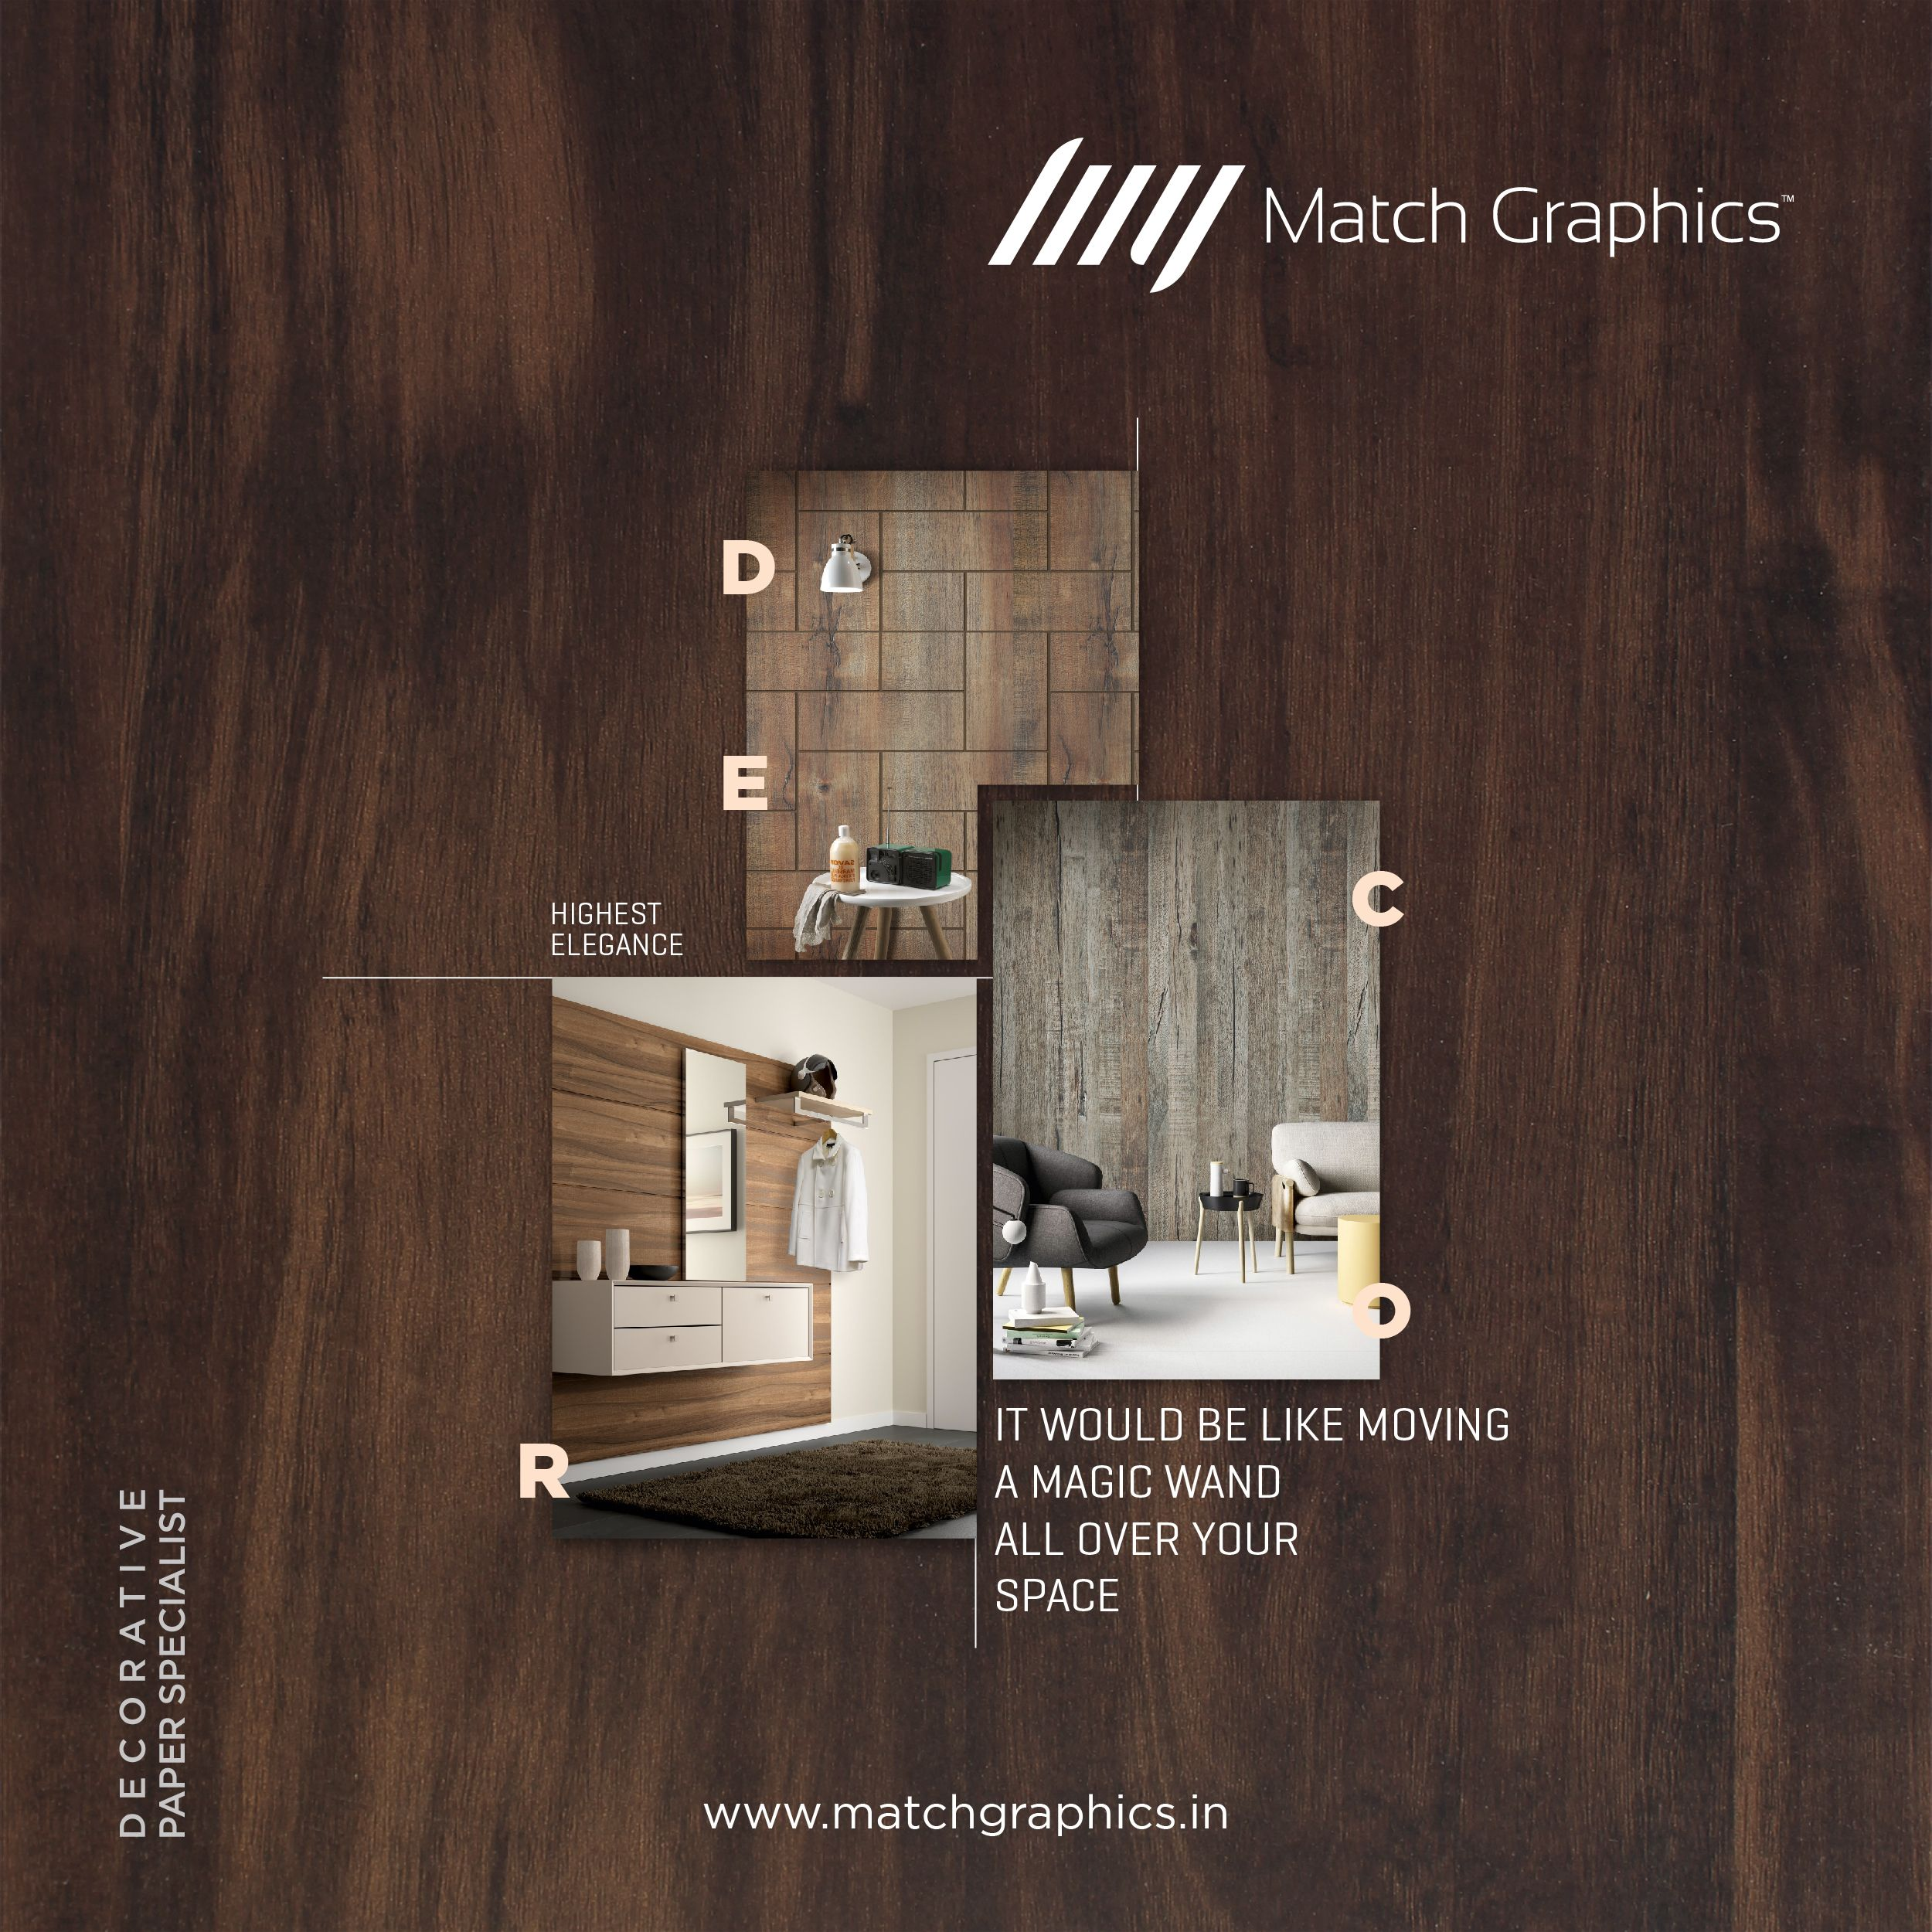 It Would Be Like Moving A Magic Wand All Over Your Space Matchgraphics Matchwell Naturaldecor Decorative Brochure Design Luxury Design Social Media Design